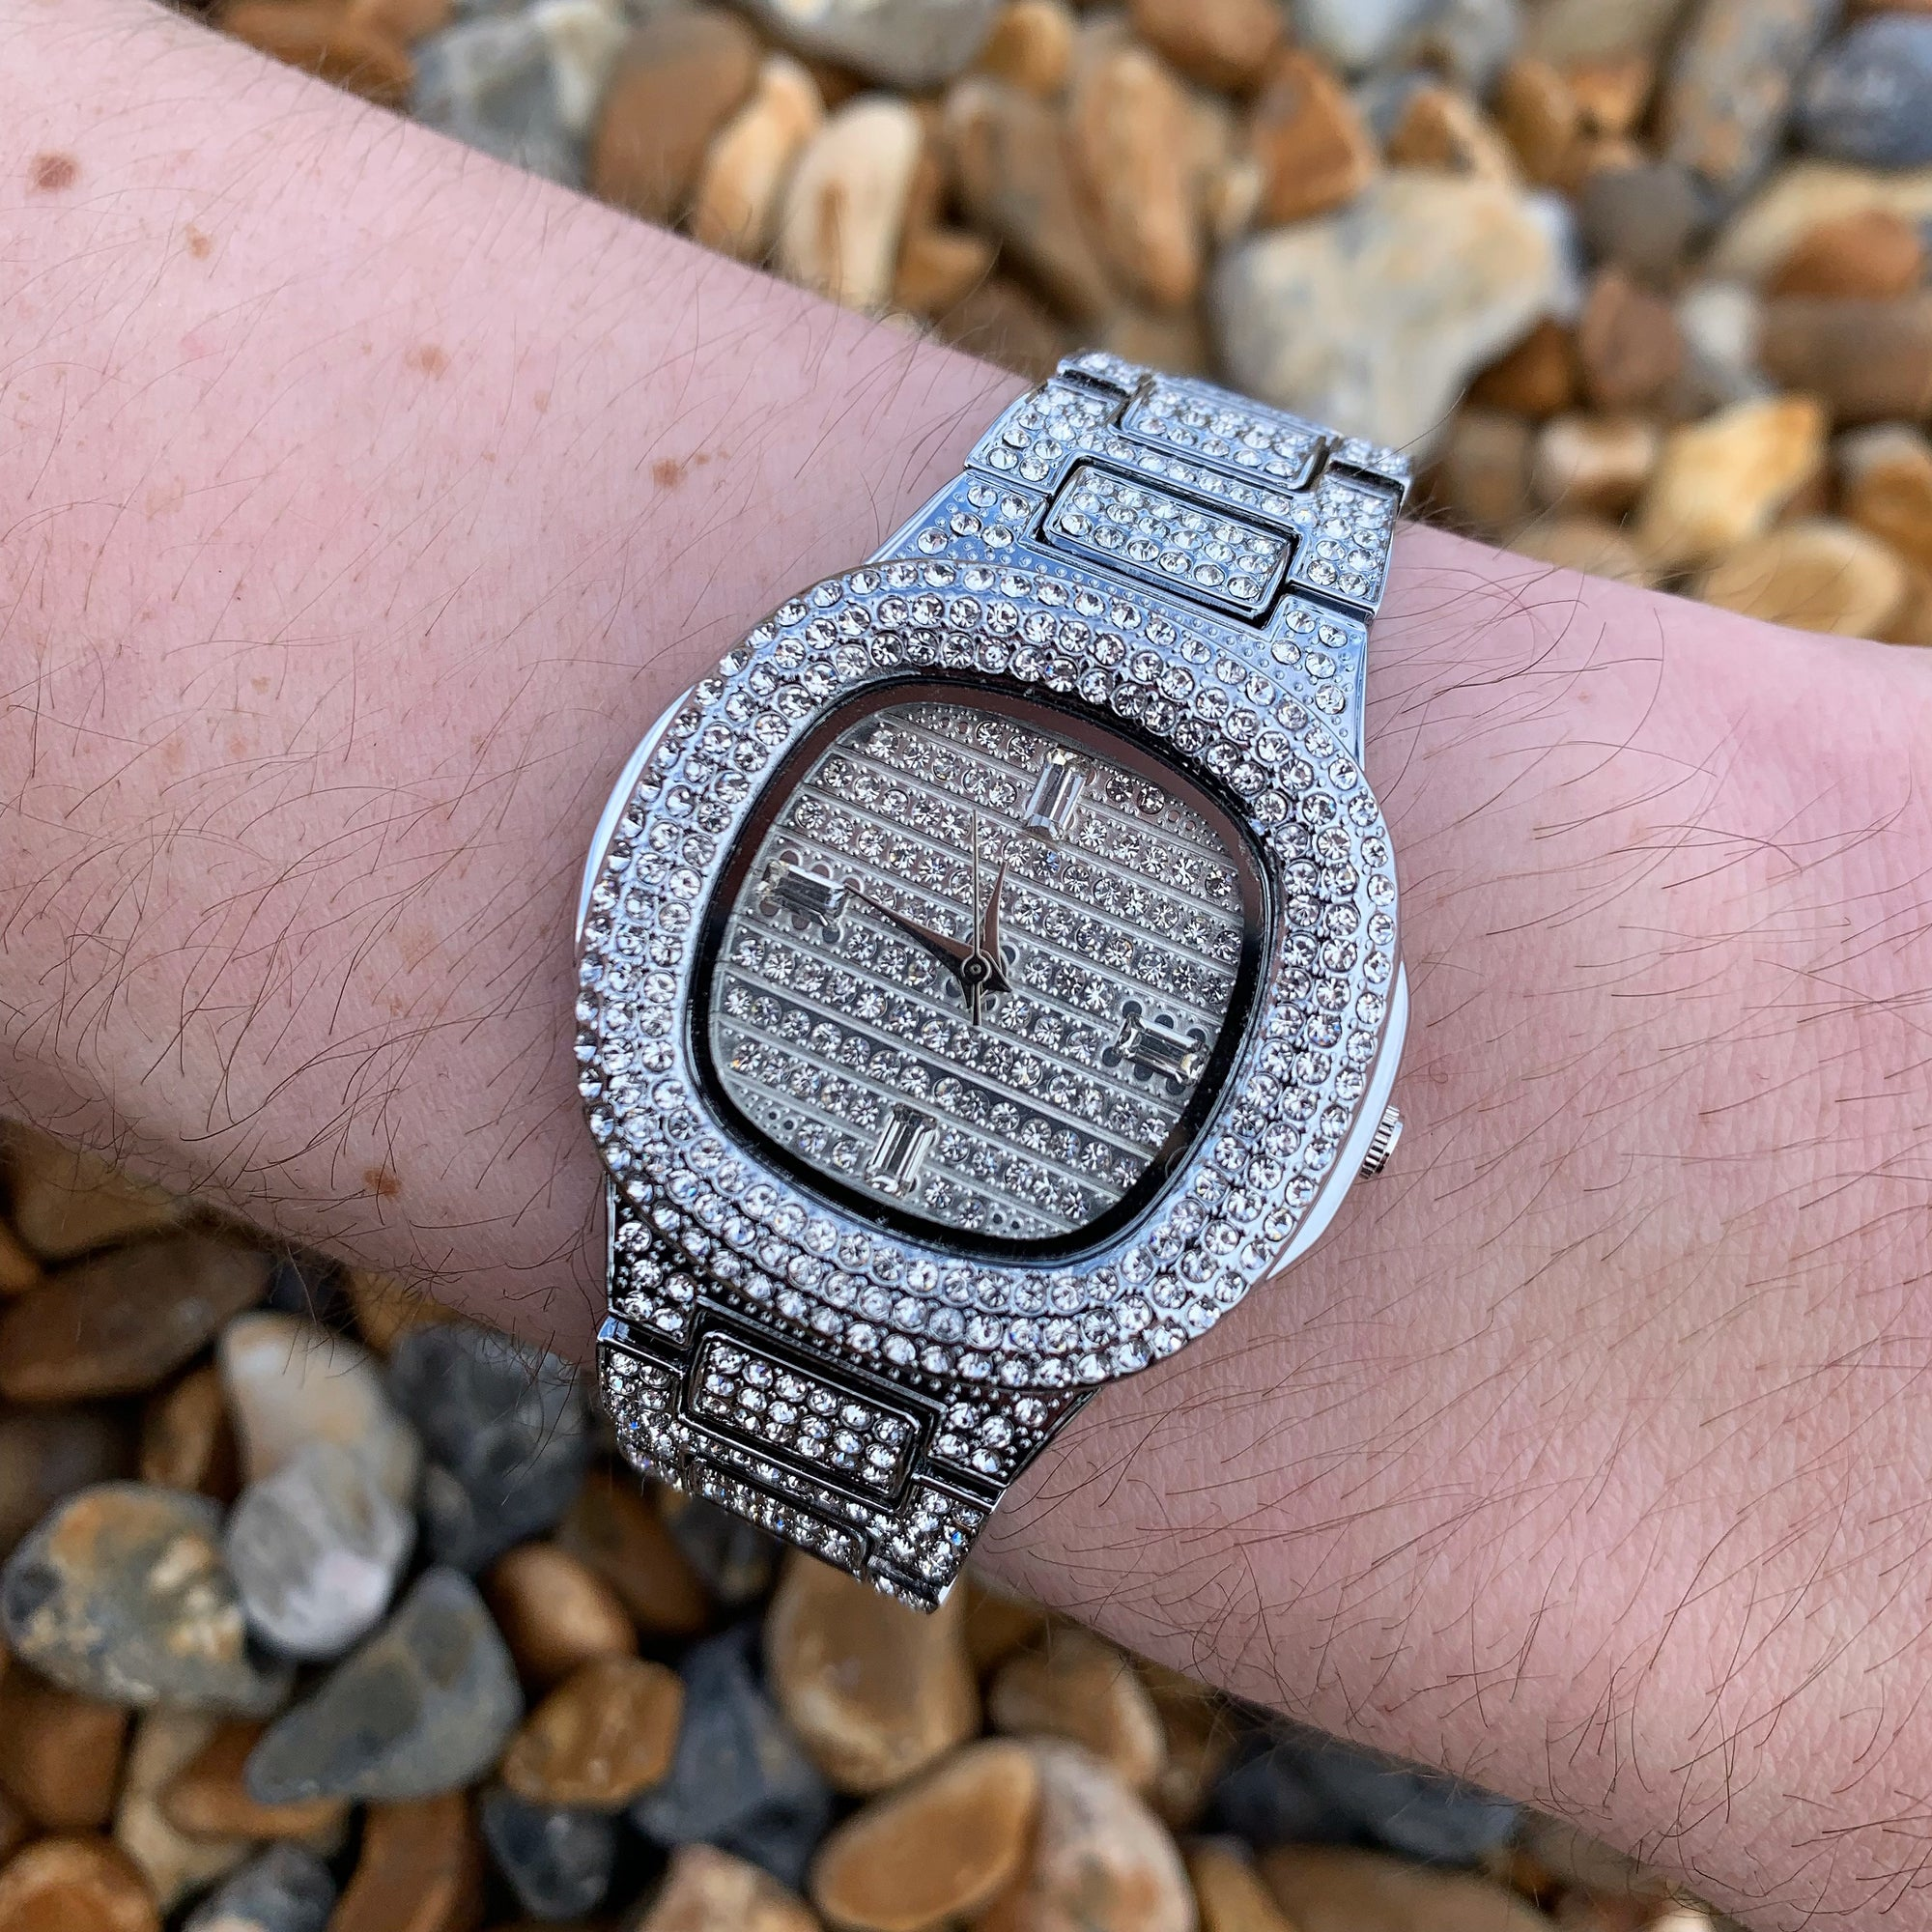 Buss Down Luxury Watch in White Gold